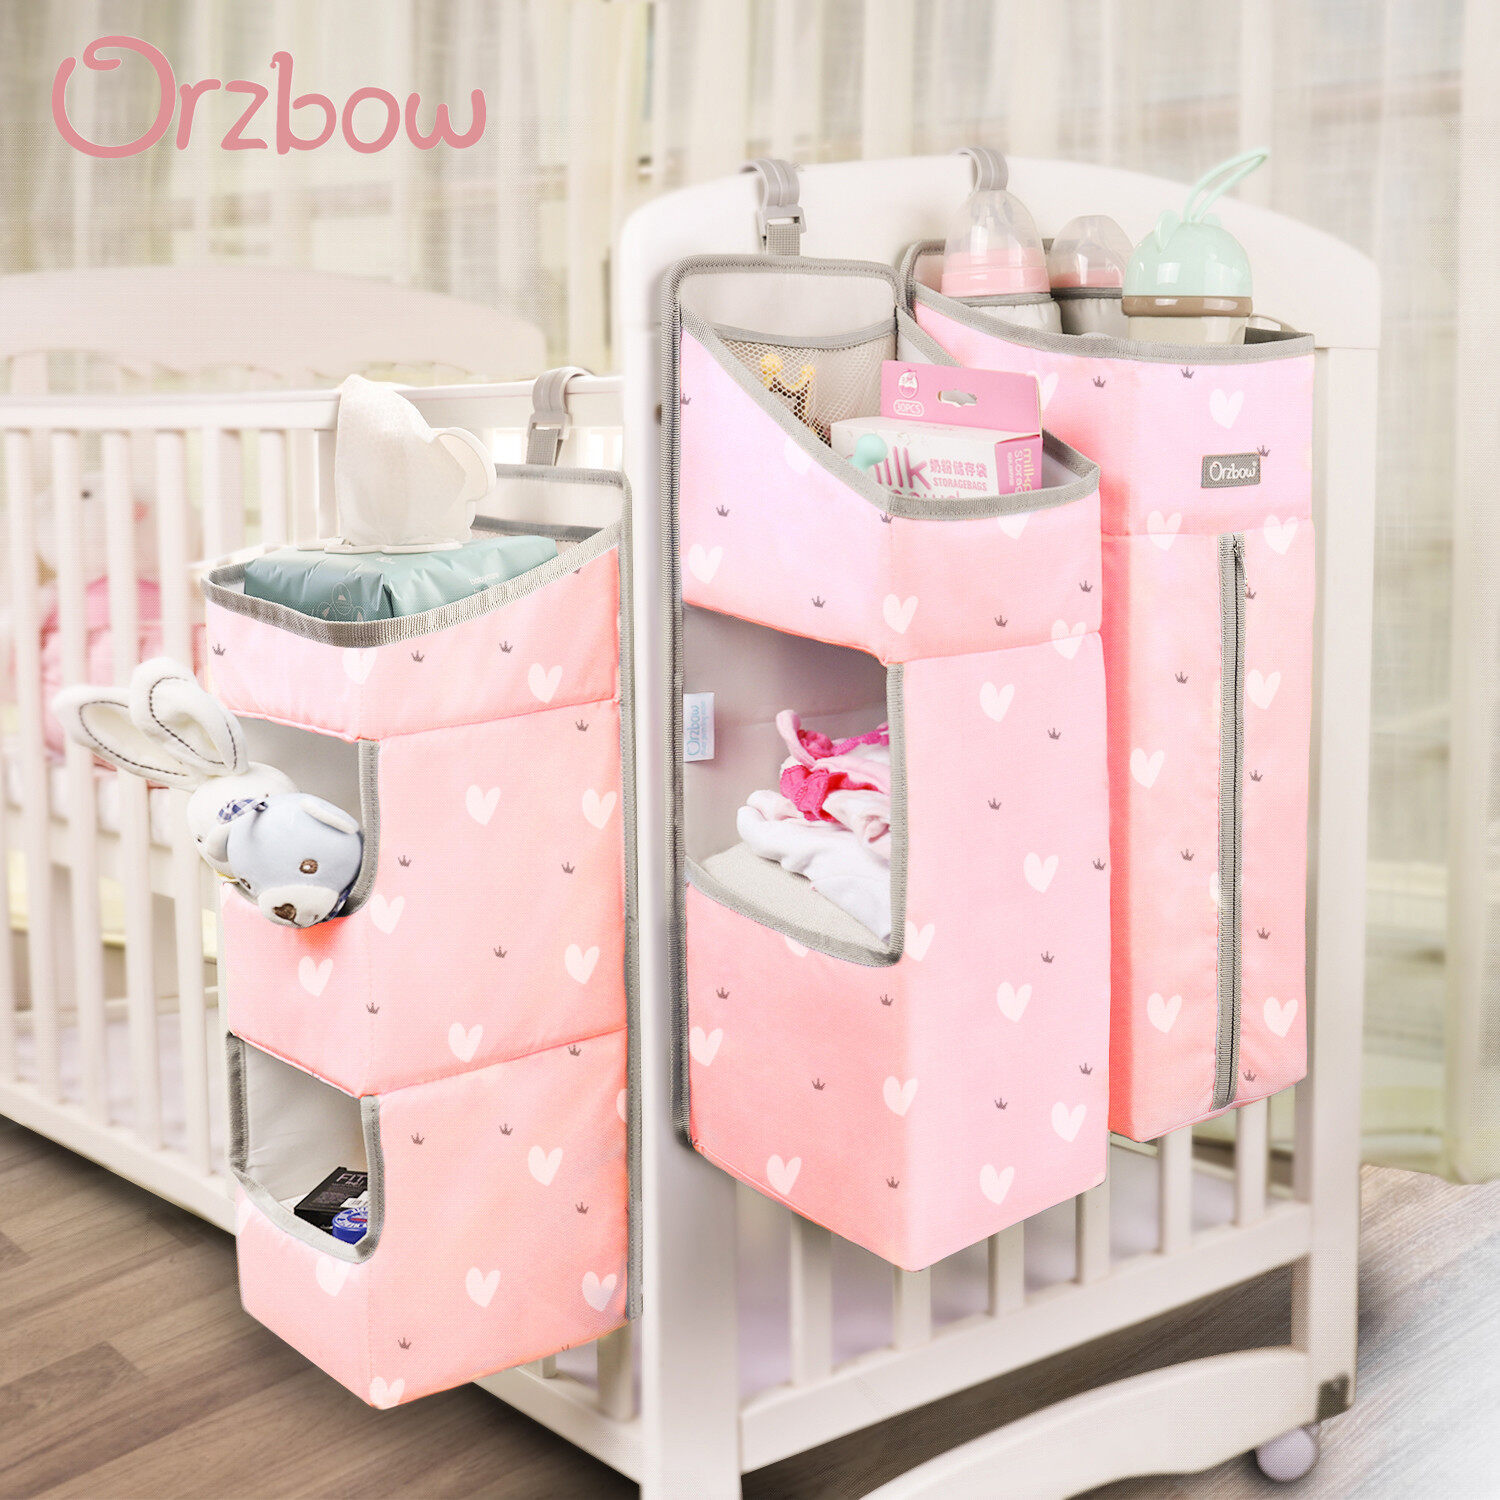 Pink Hang on Crib Changing Table or Wall Orzbow 3-in-1 Nursery Organizer and Baby Diaper Caddy Hanging Diaper Organization Storage for Baby Essentials